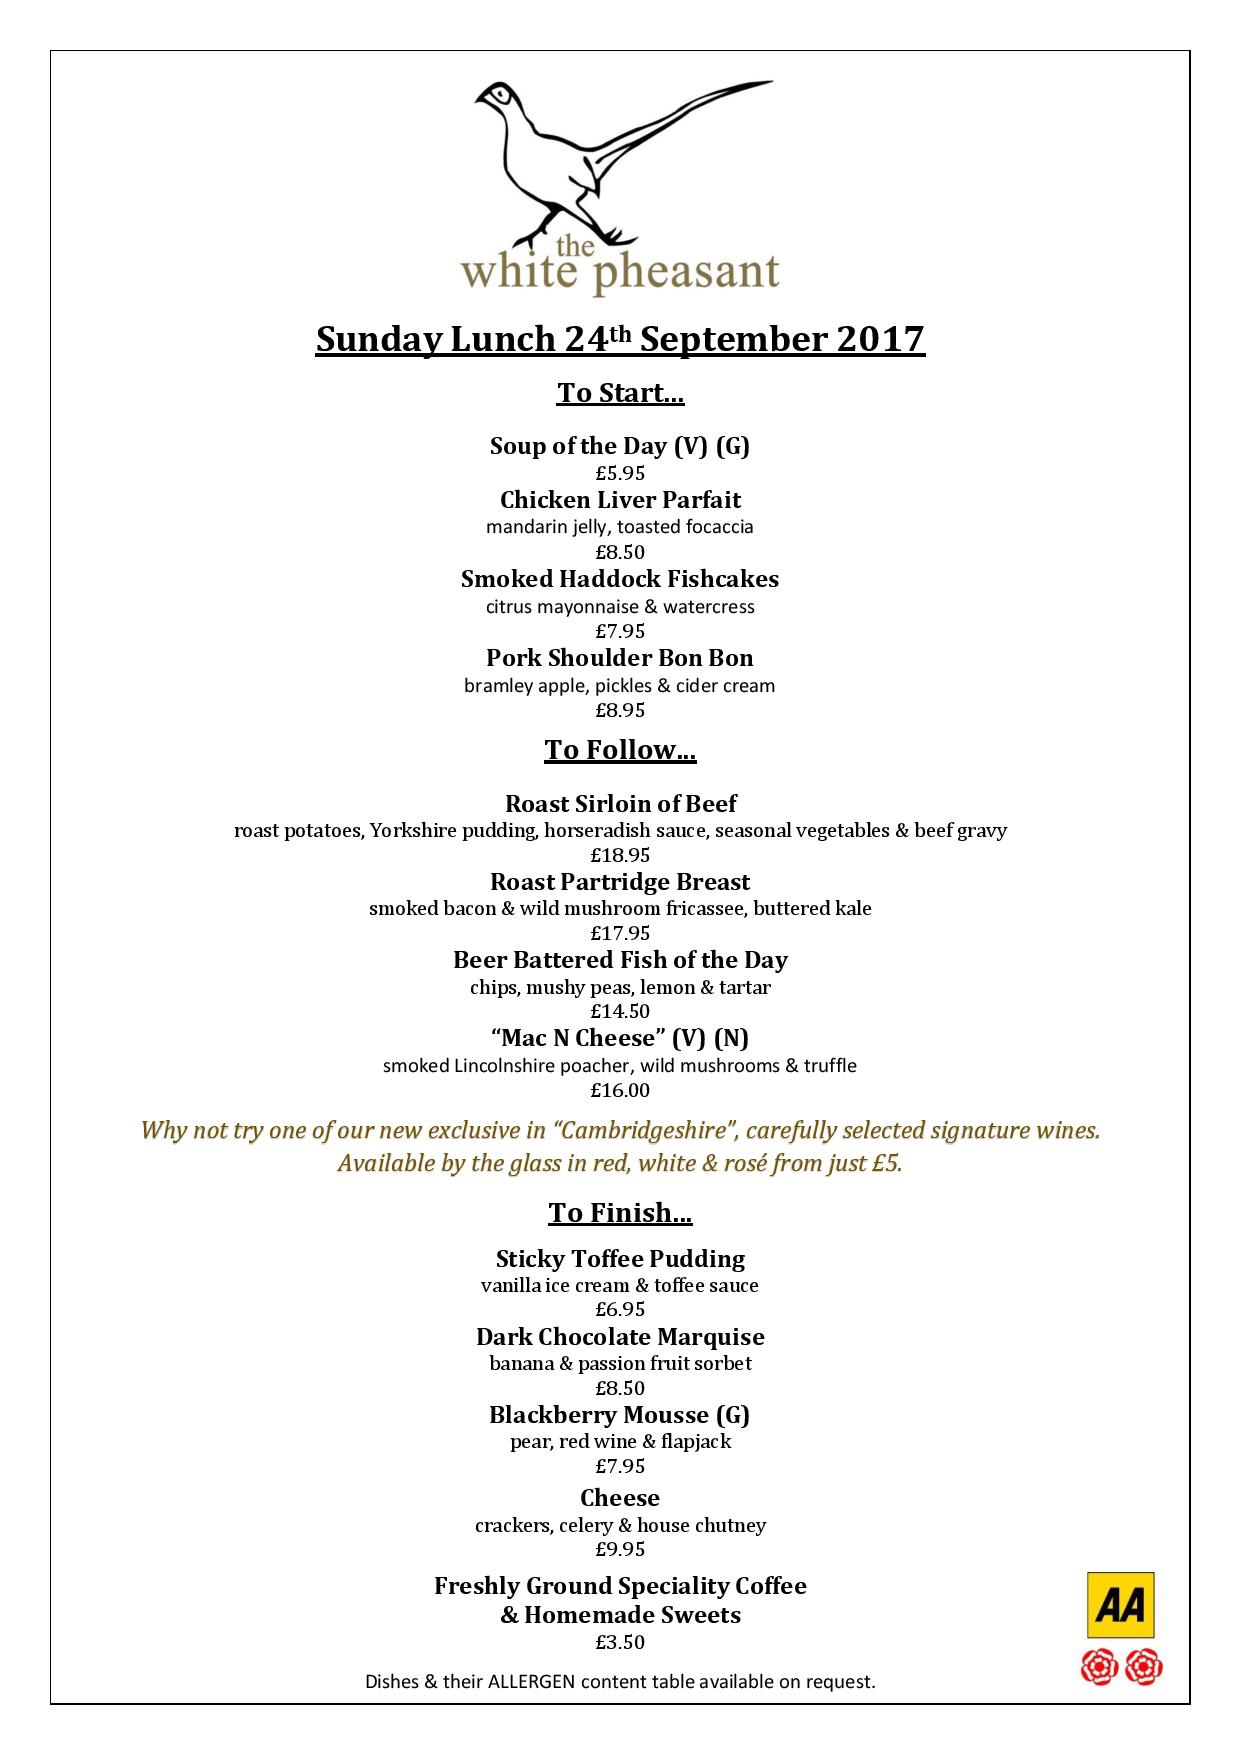 Autumn Sunday Lunches at The White Pheasant